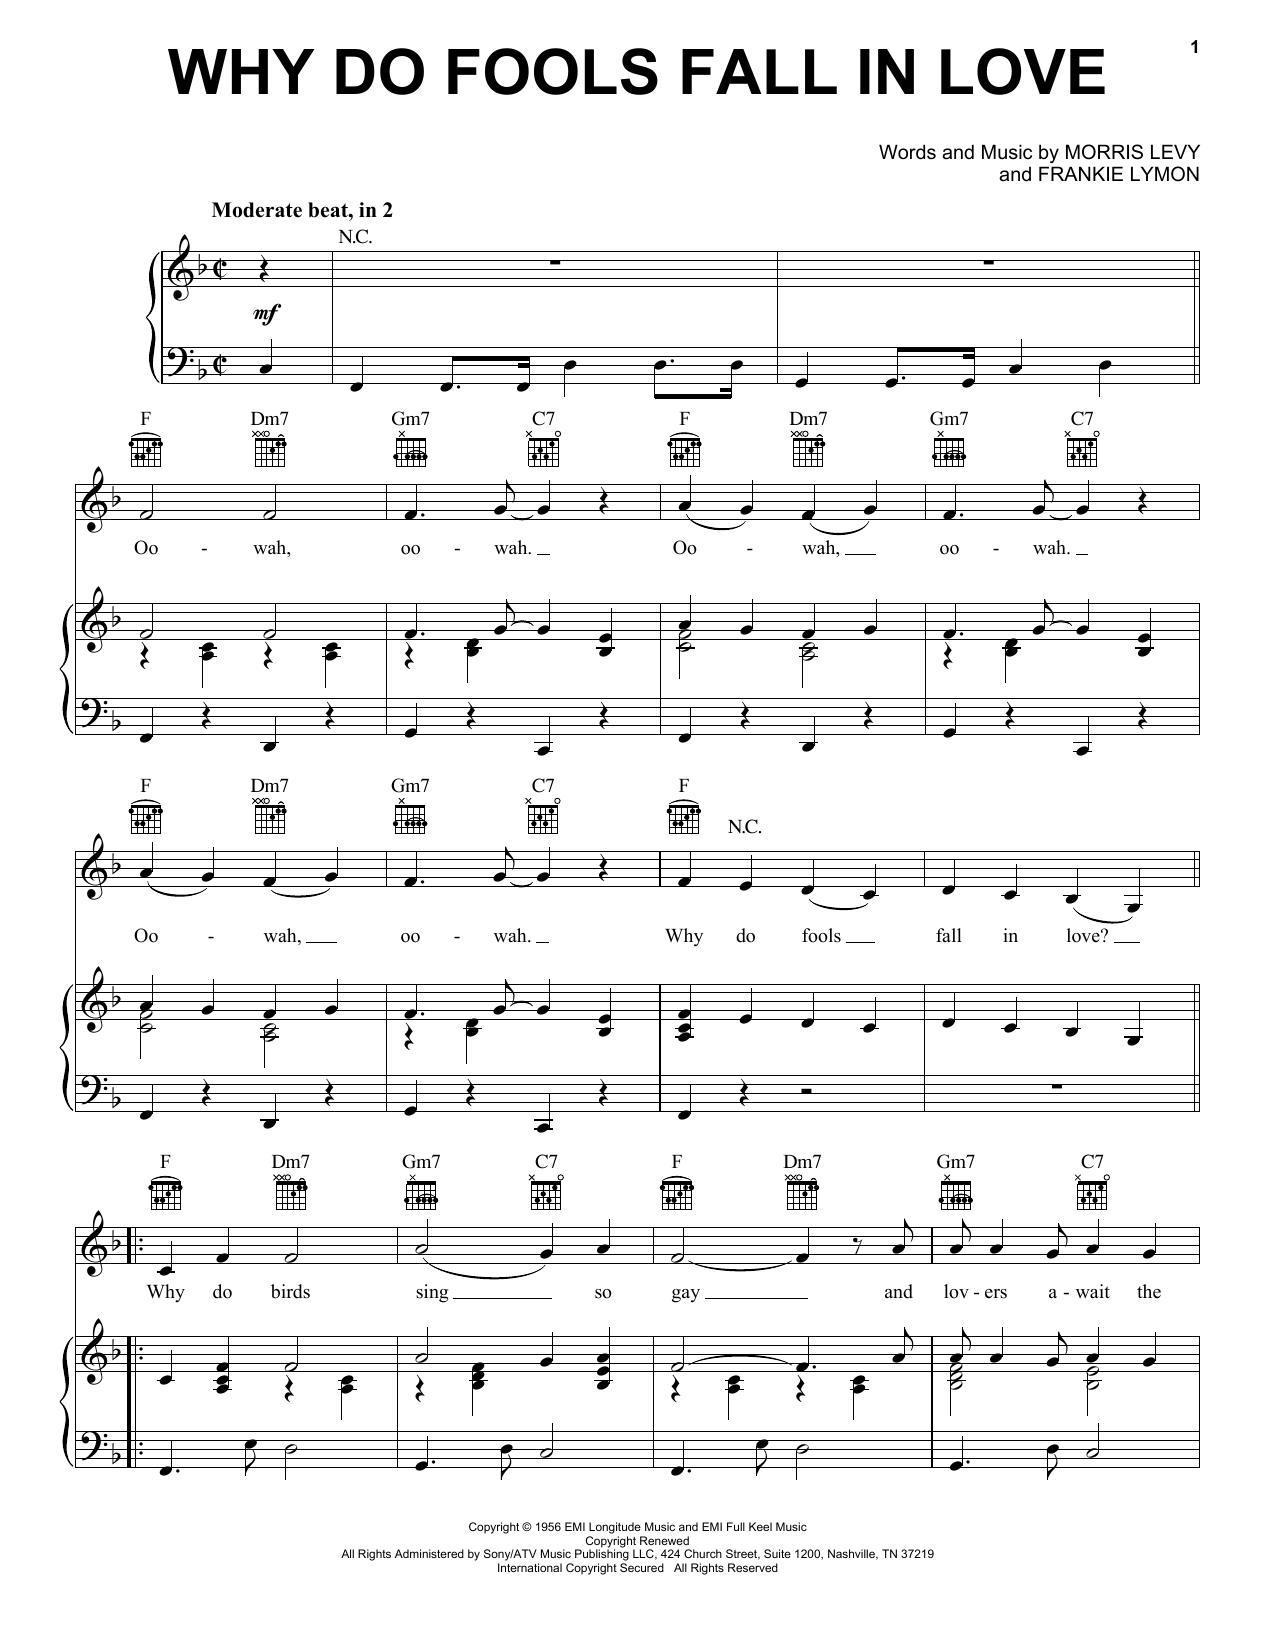 Frankie Lymon & The Teenagers Why Do Fools Fall In Love sheet music notes and chords